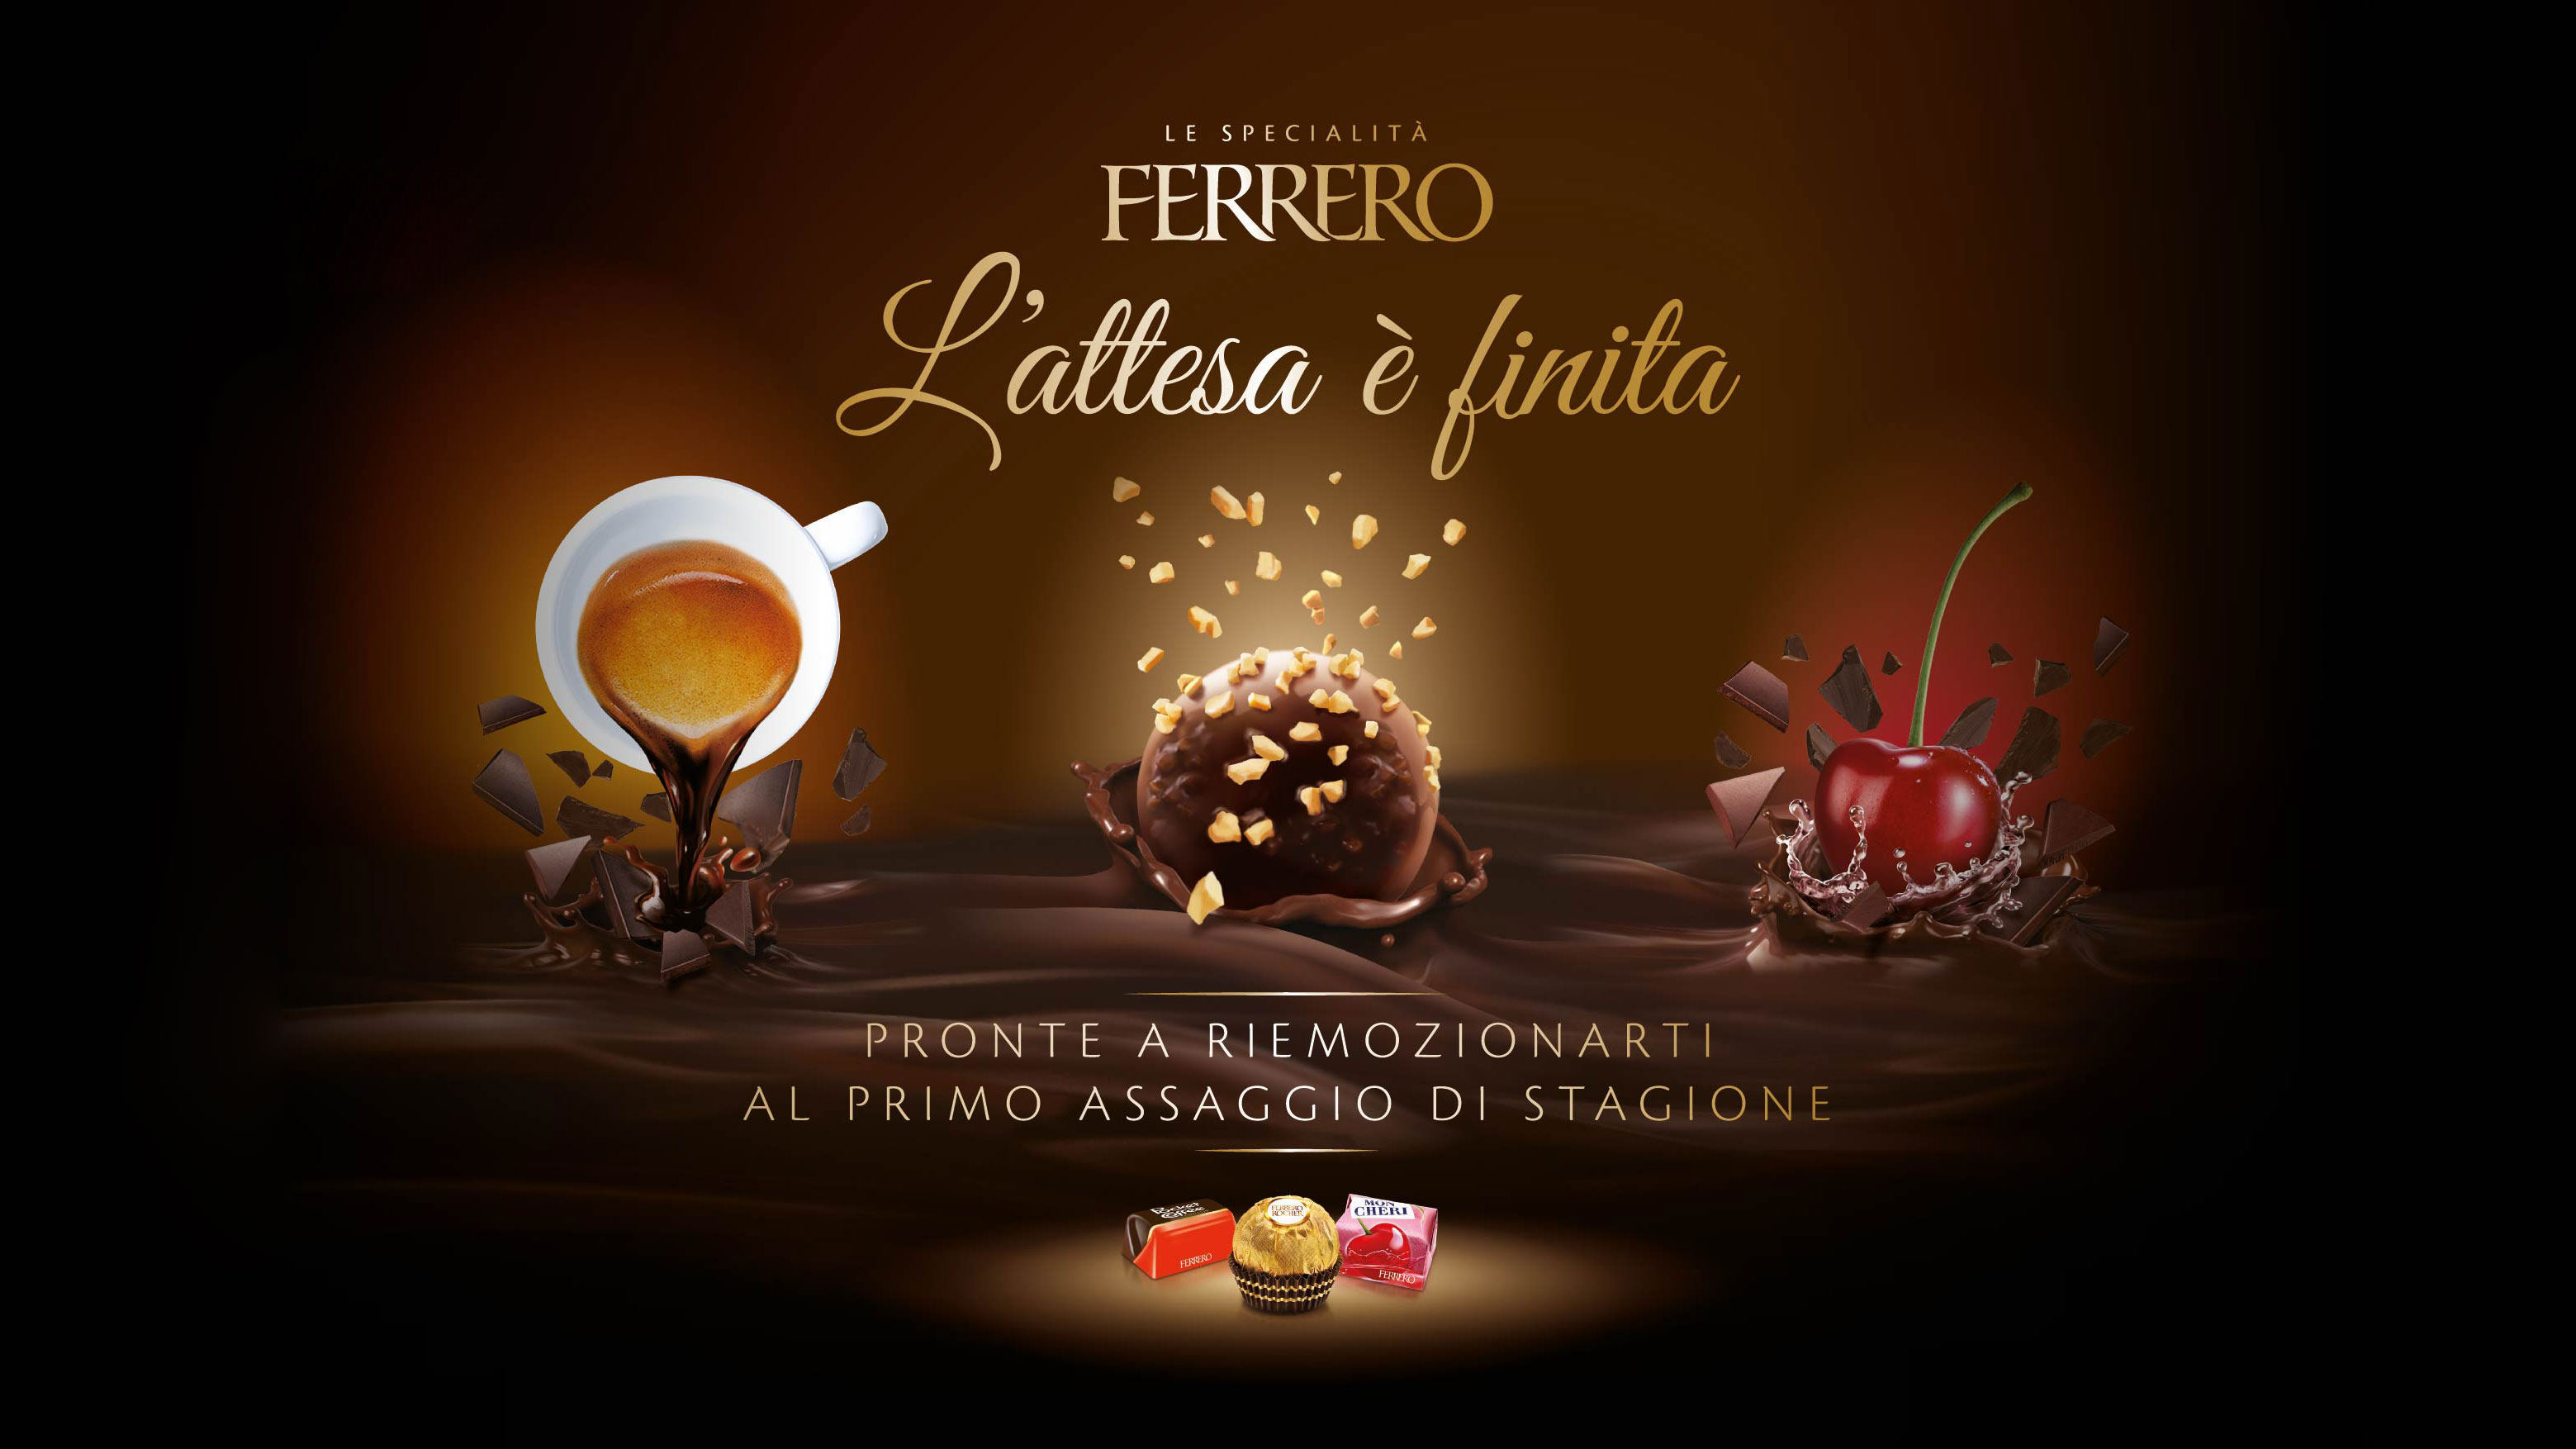 Ferrero Praline Reintro communication materials